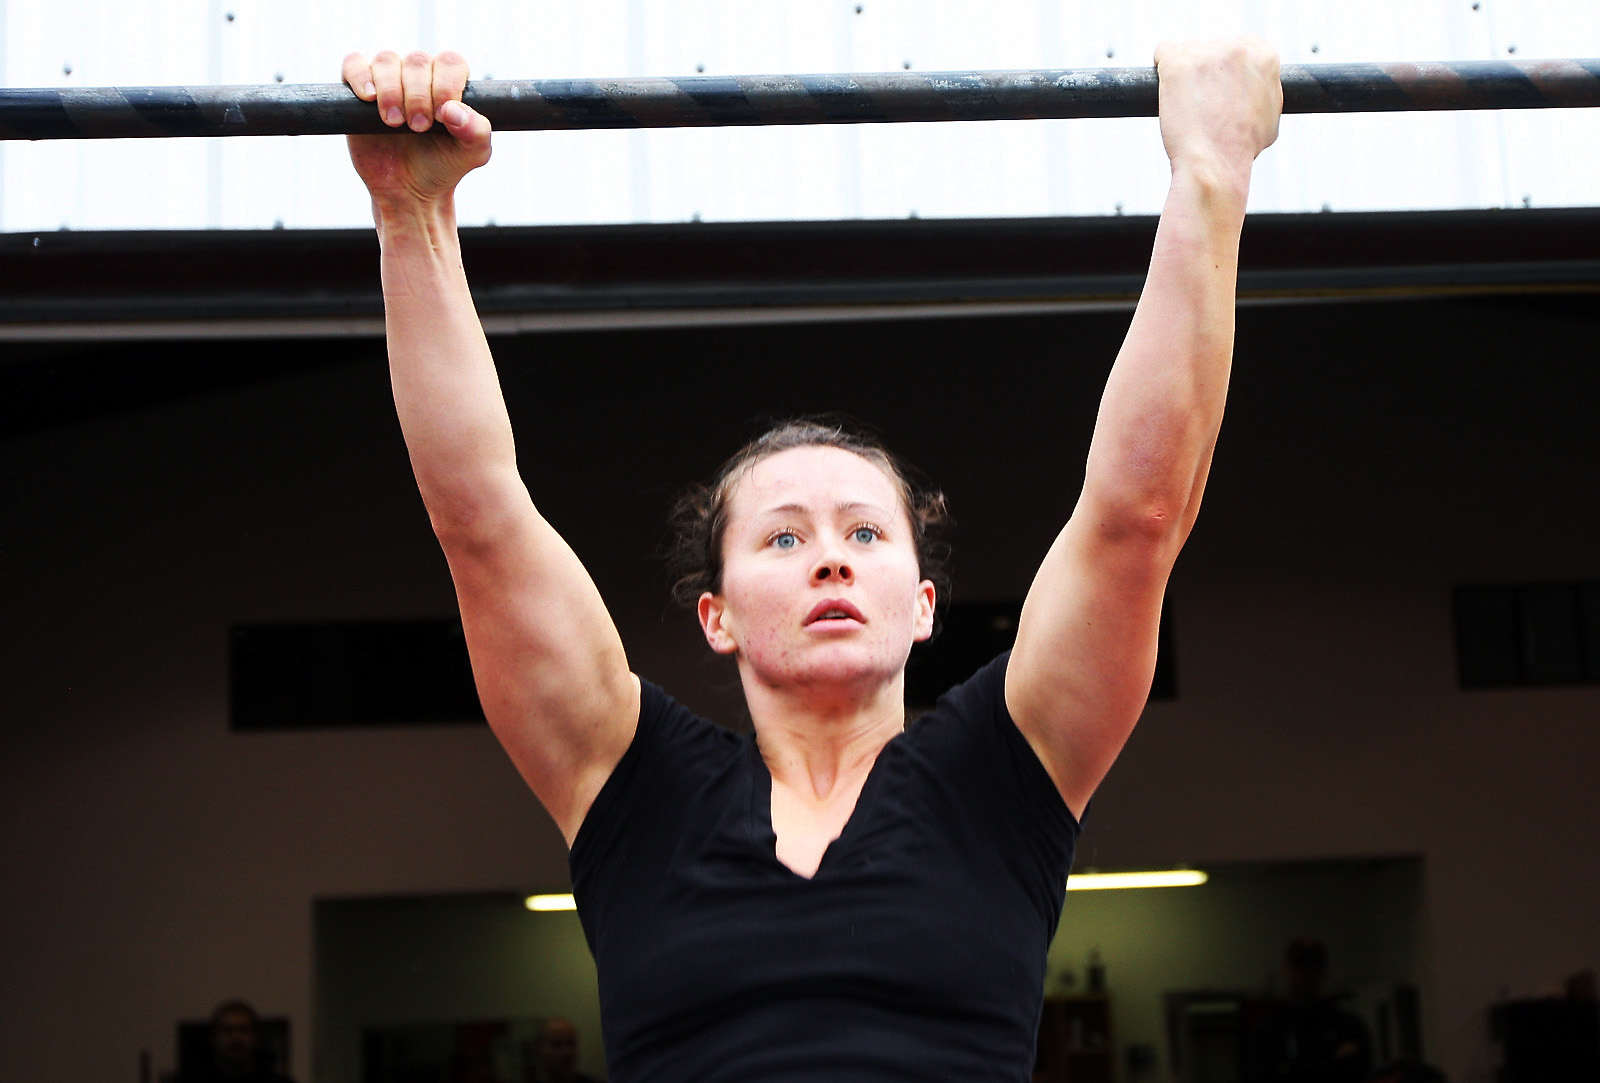 http://games2009.crossfit.com/Polly_pullup.jpg